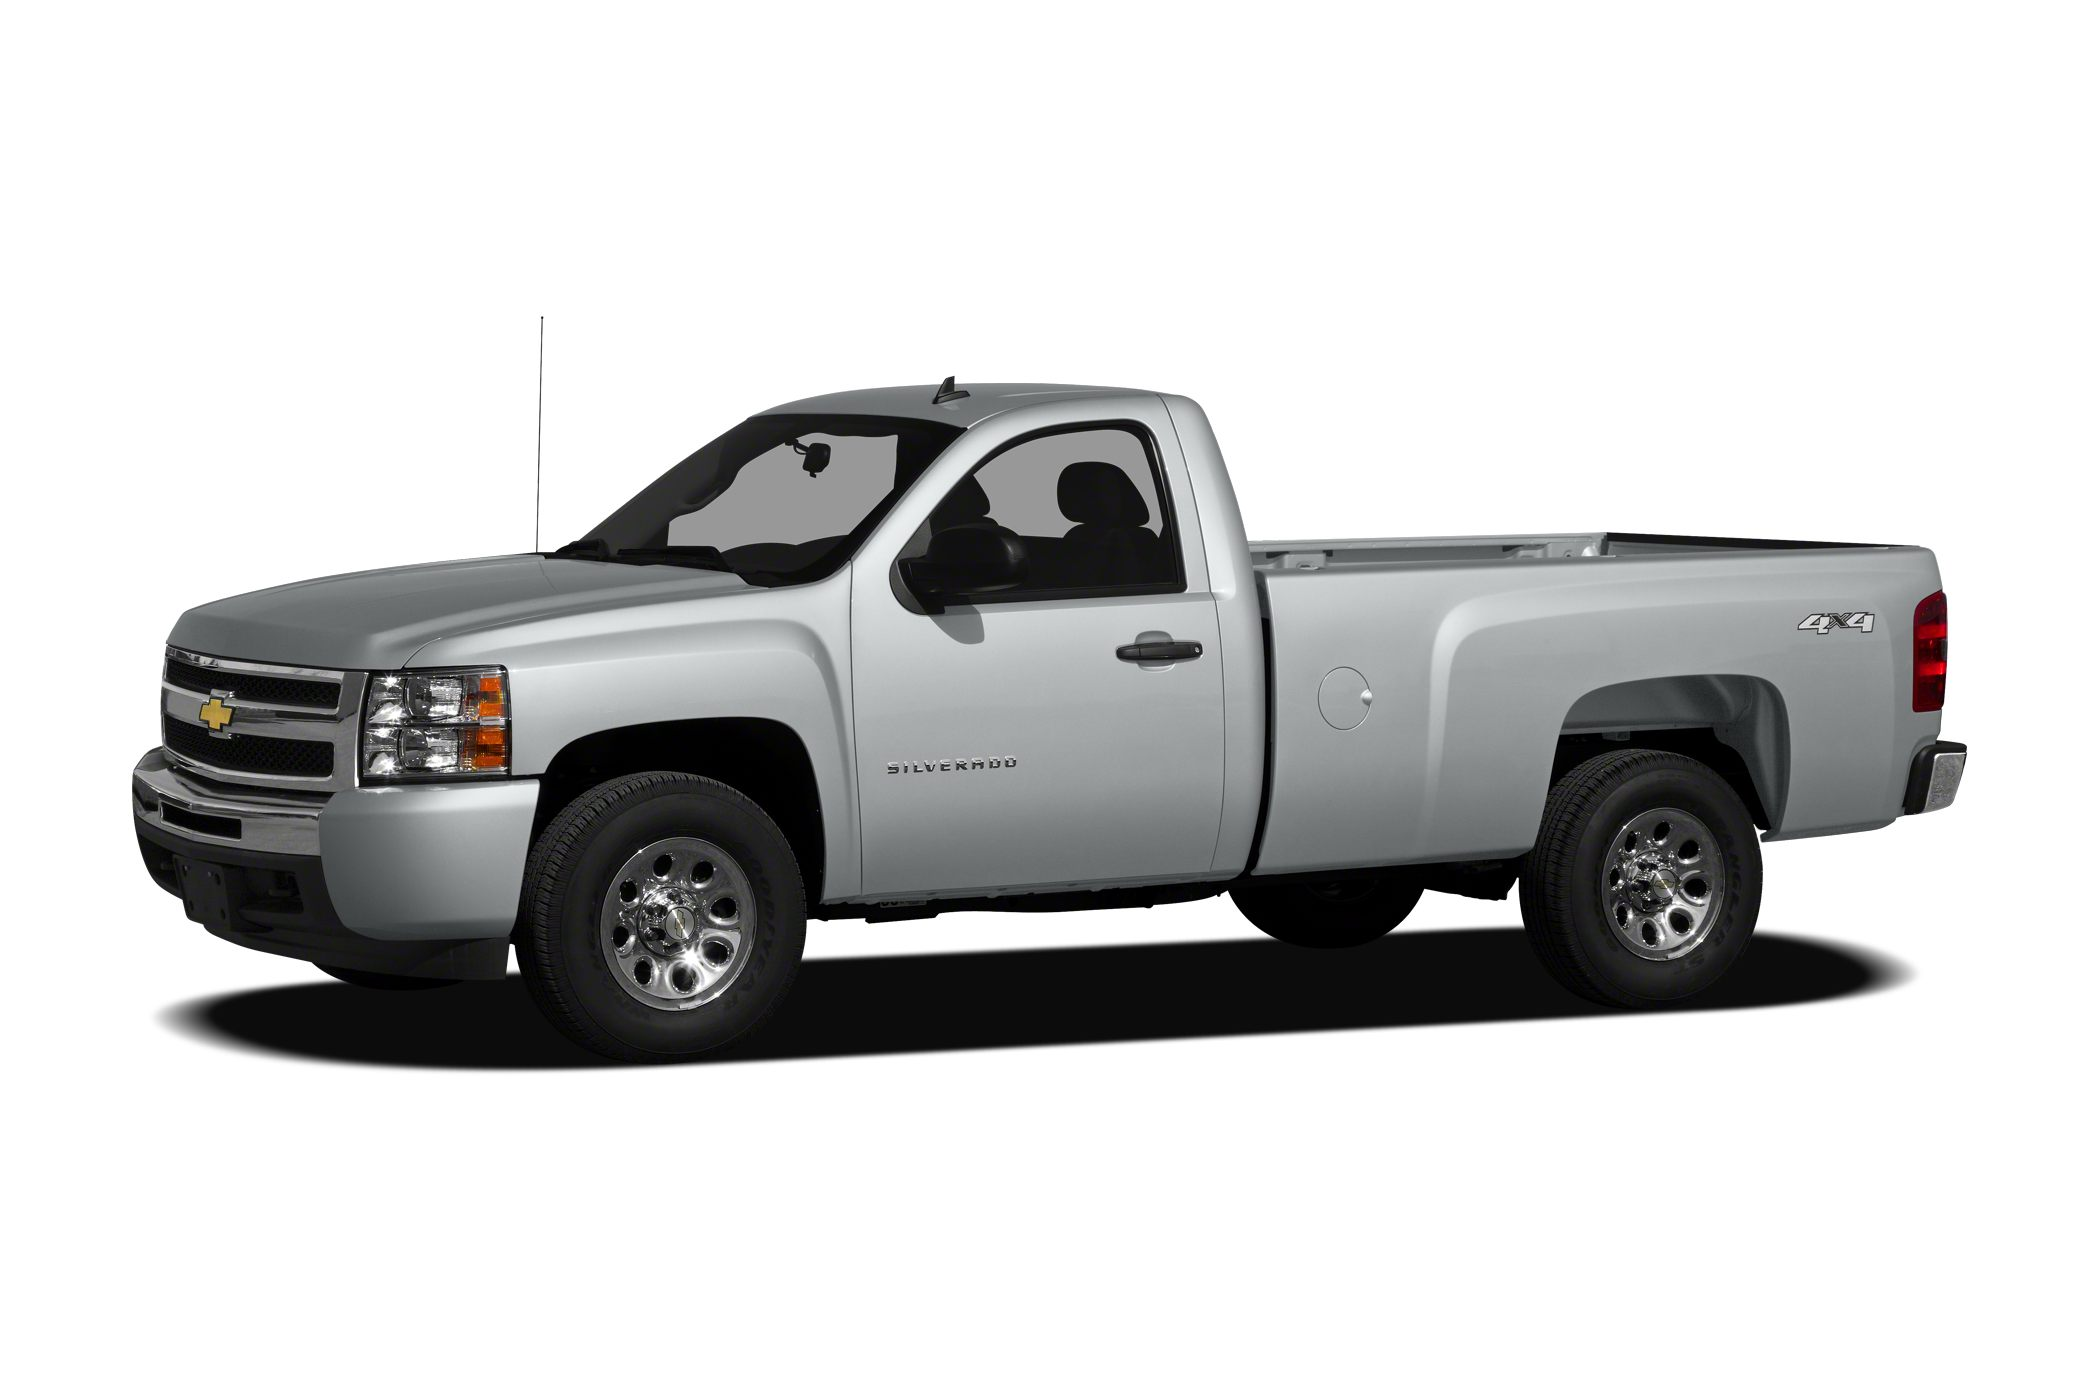 2012 Chevrolet Silverado 1500 LT Crew Cab Pickup for sale in Charlotte for $0 with 39,185 miles